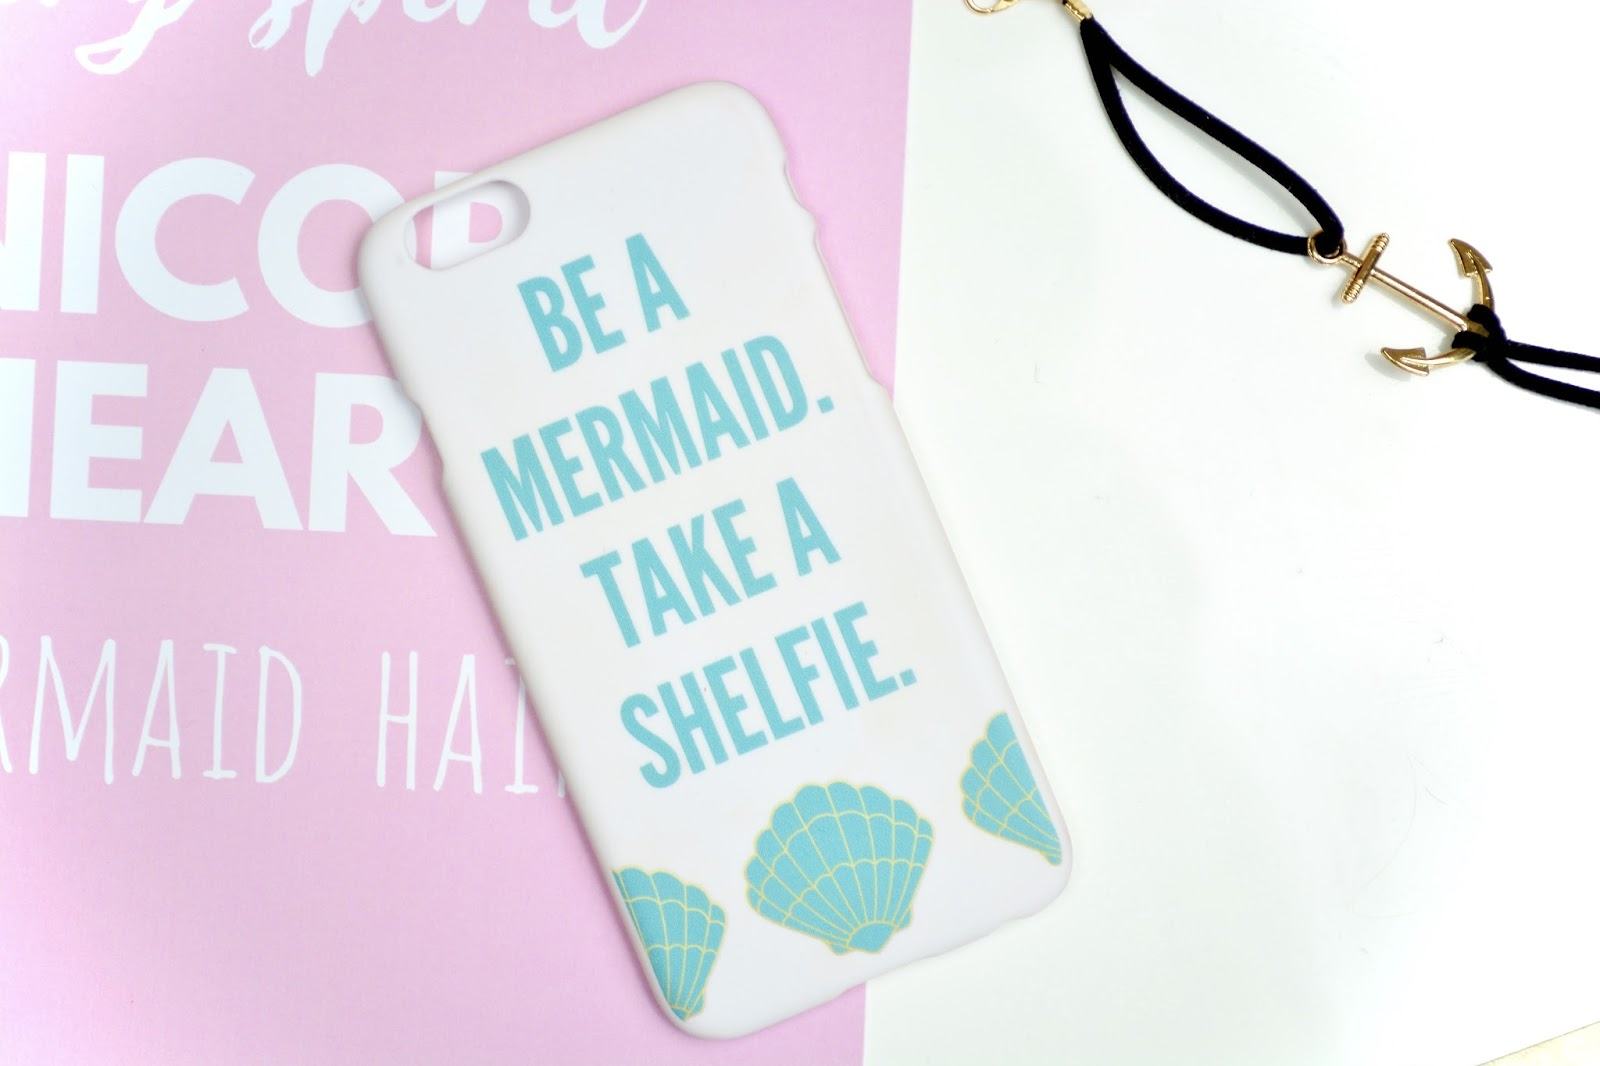 Coconut Lane, Coconut Queen, Coconut Lane Discount Code, Coconut Lane Accessories, Phone Case, Mermaid Phone Case, Accessories.